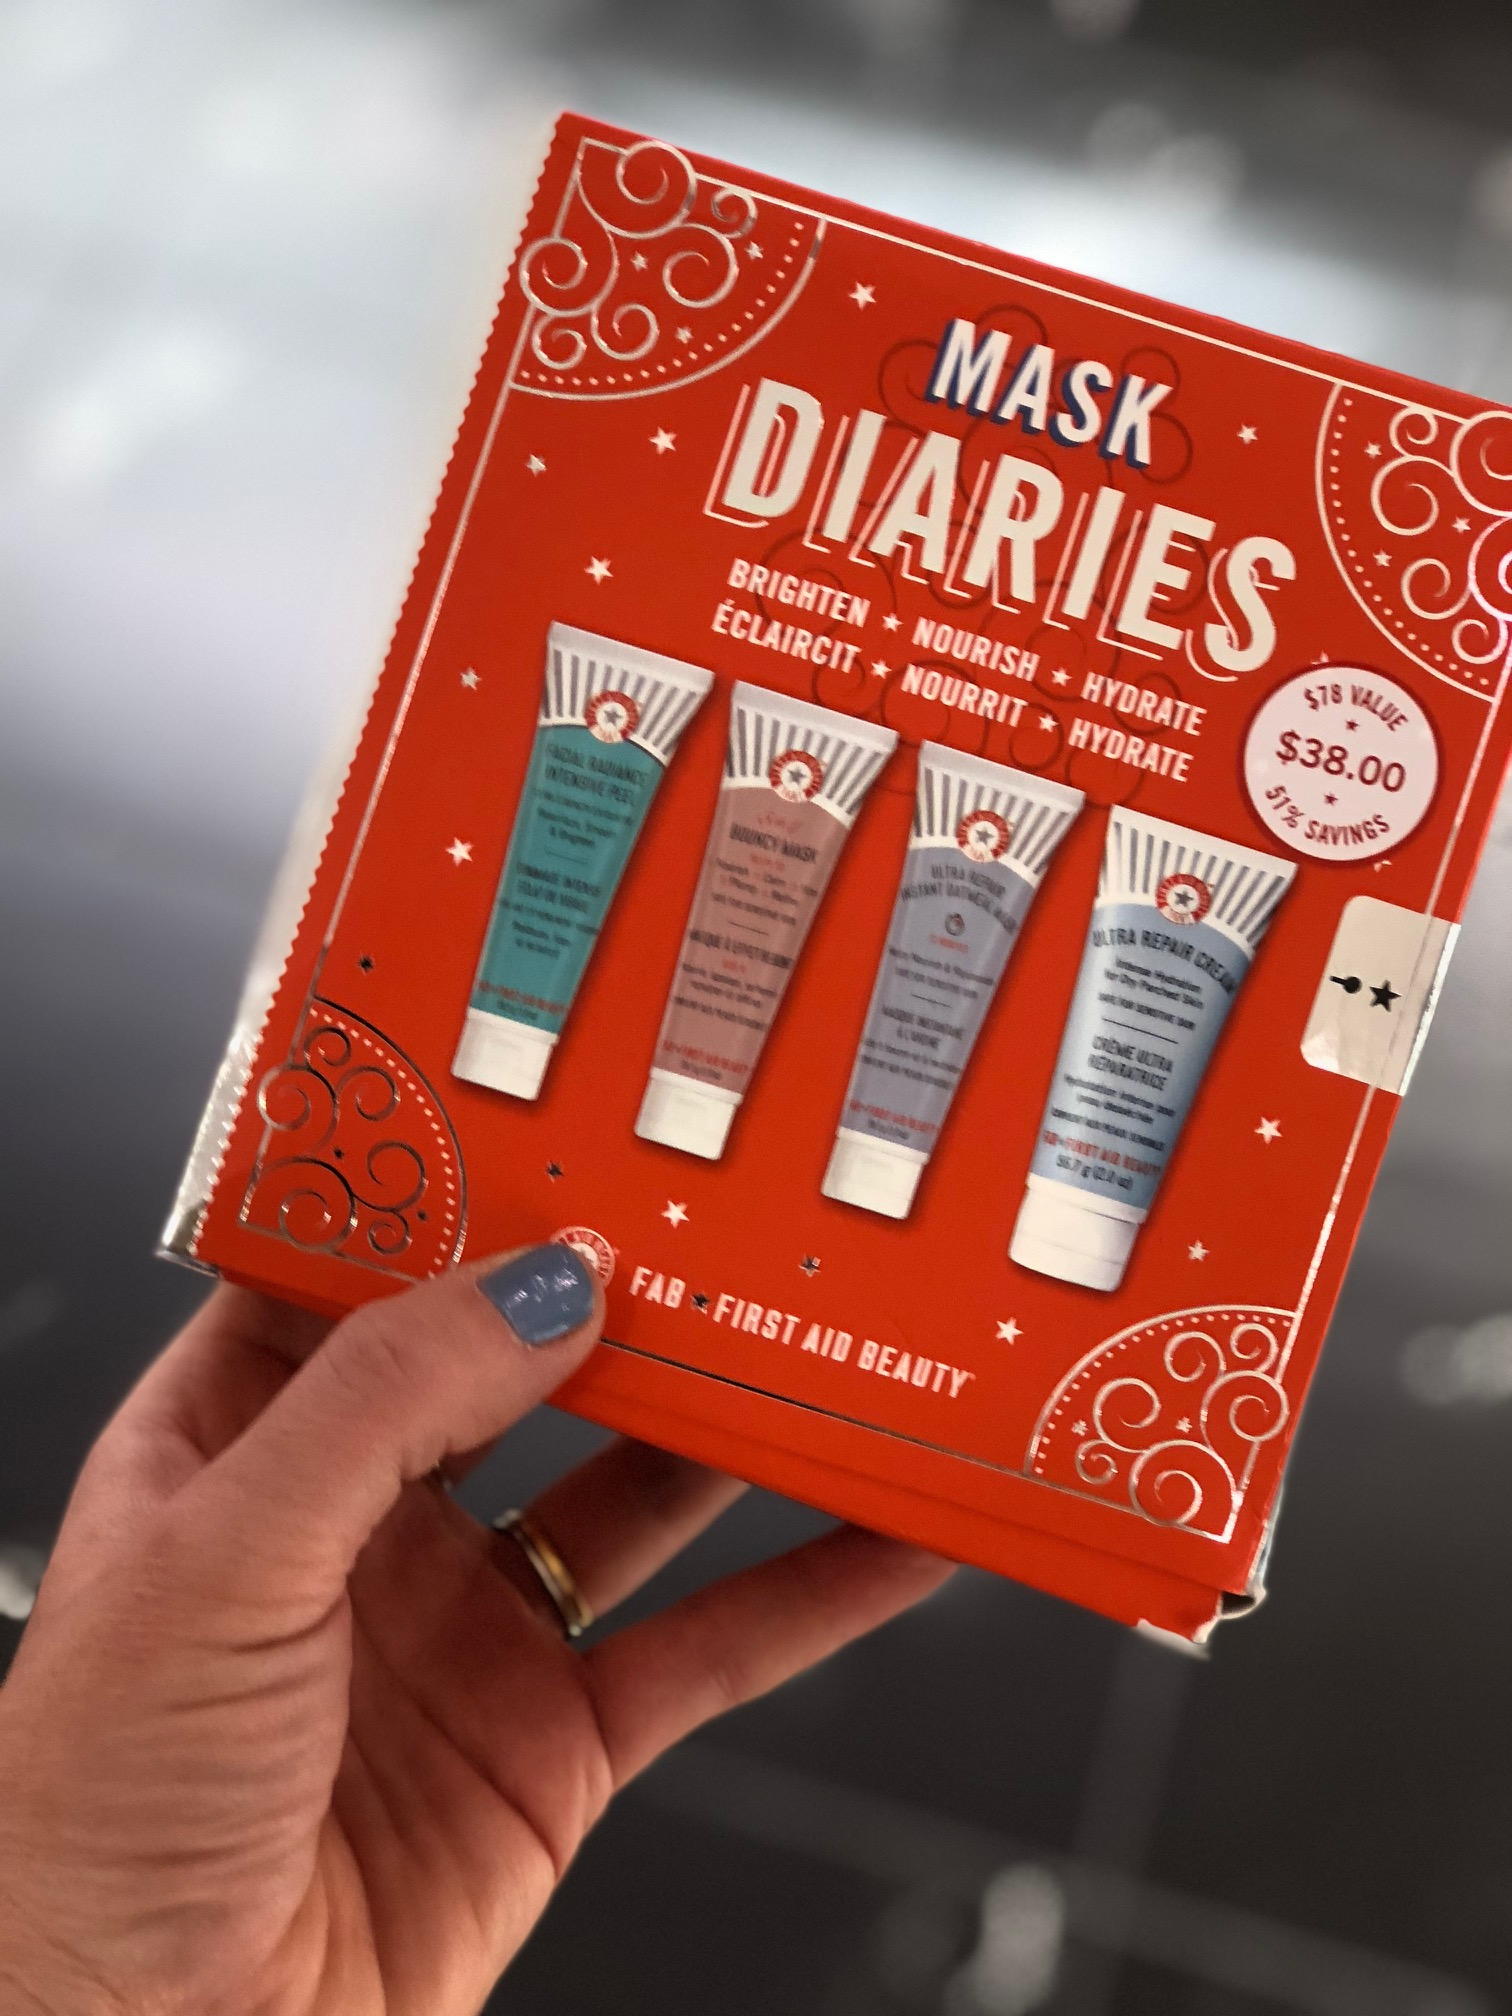 10 last-minute beauty gifts at Sephora in JCPenney: Mask Diaries from First Aid Beauty | Sponsor